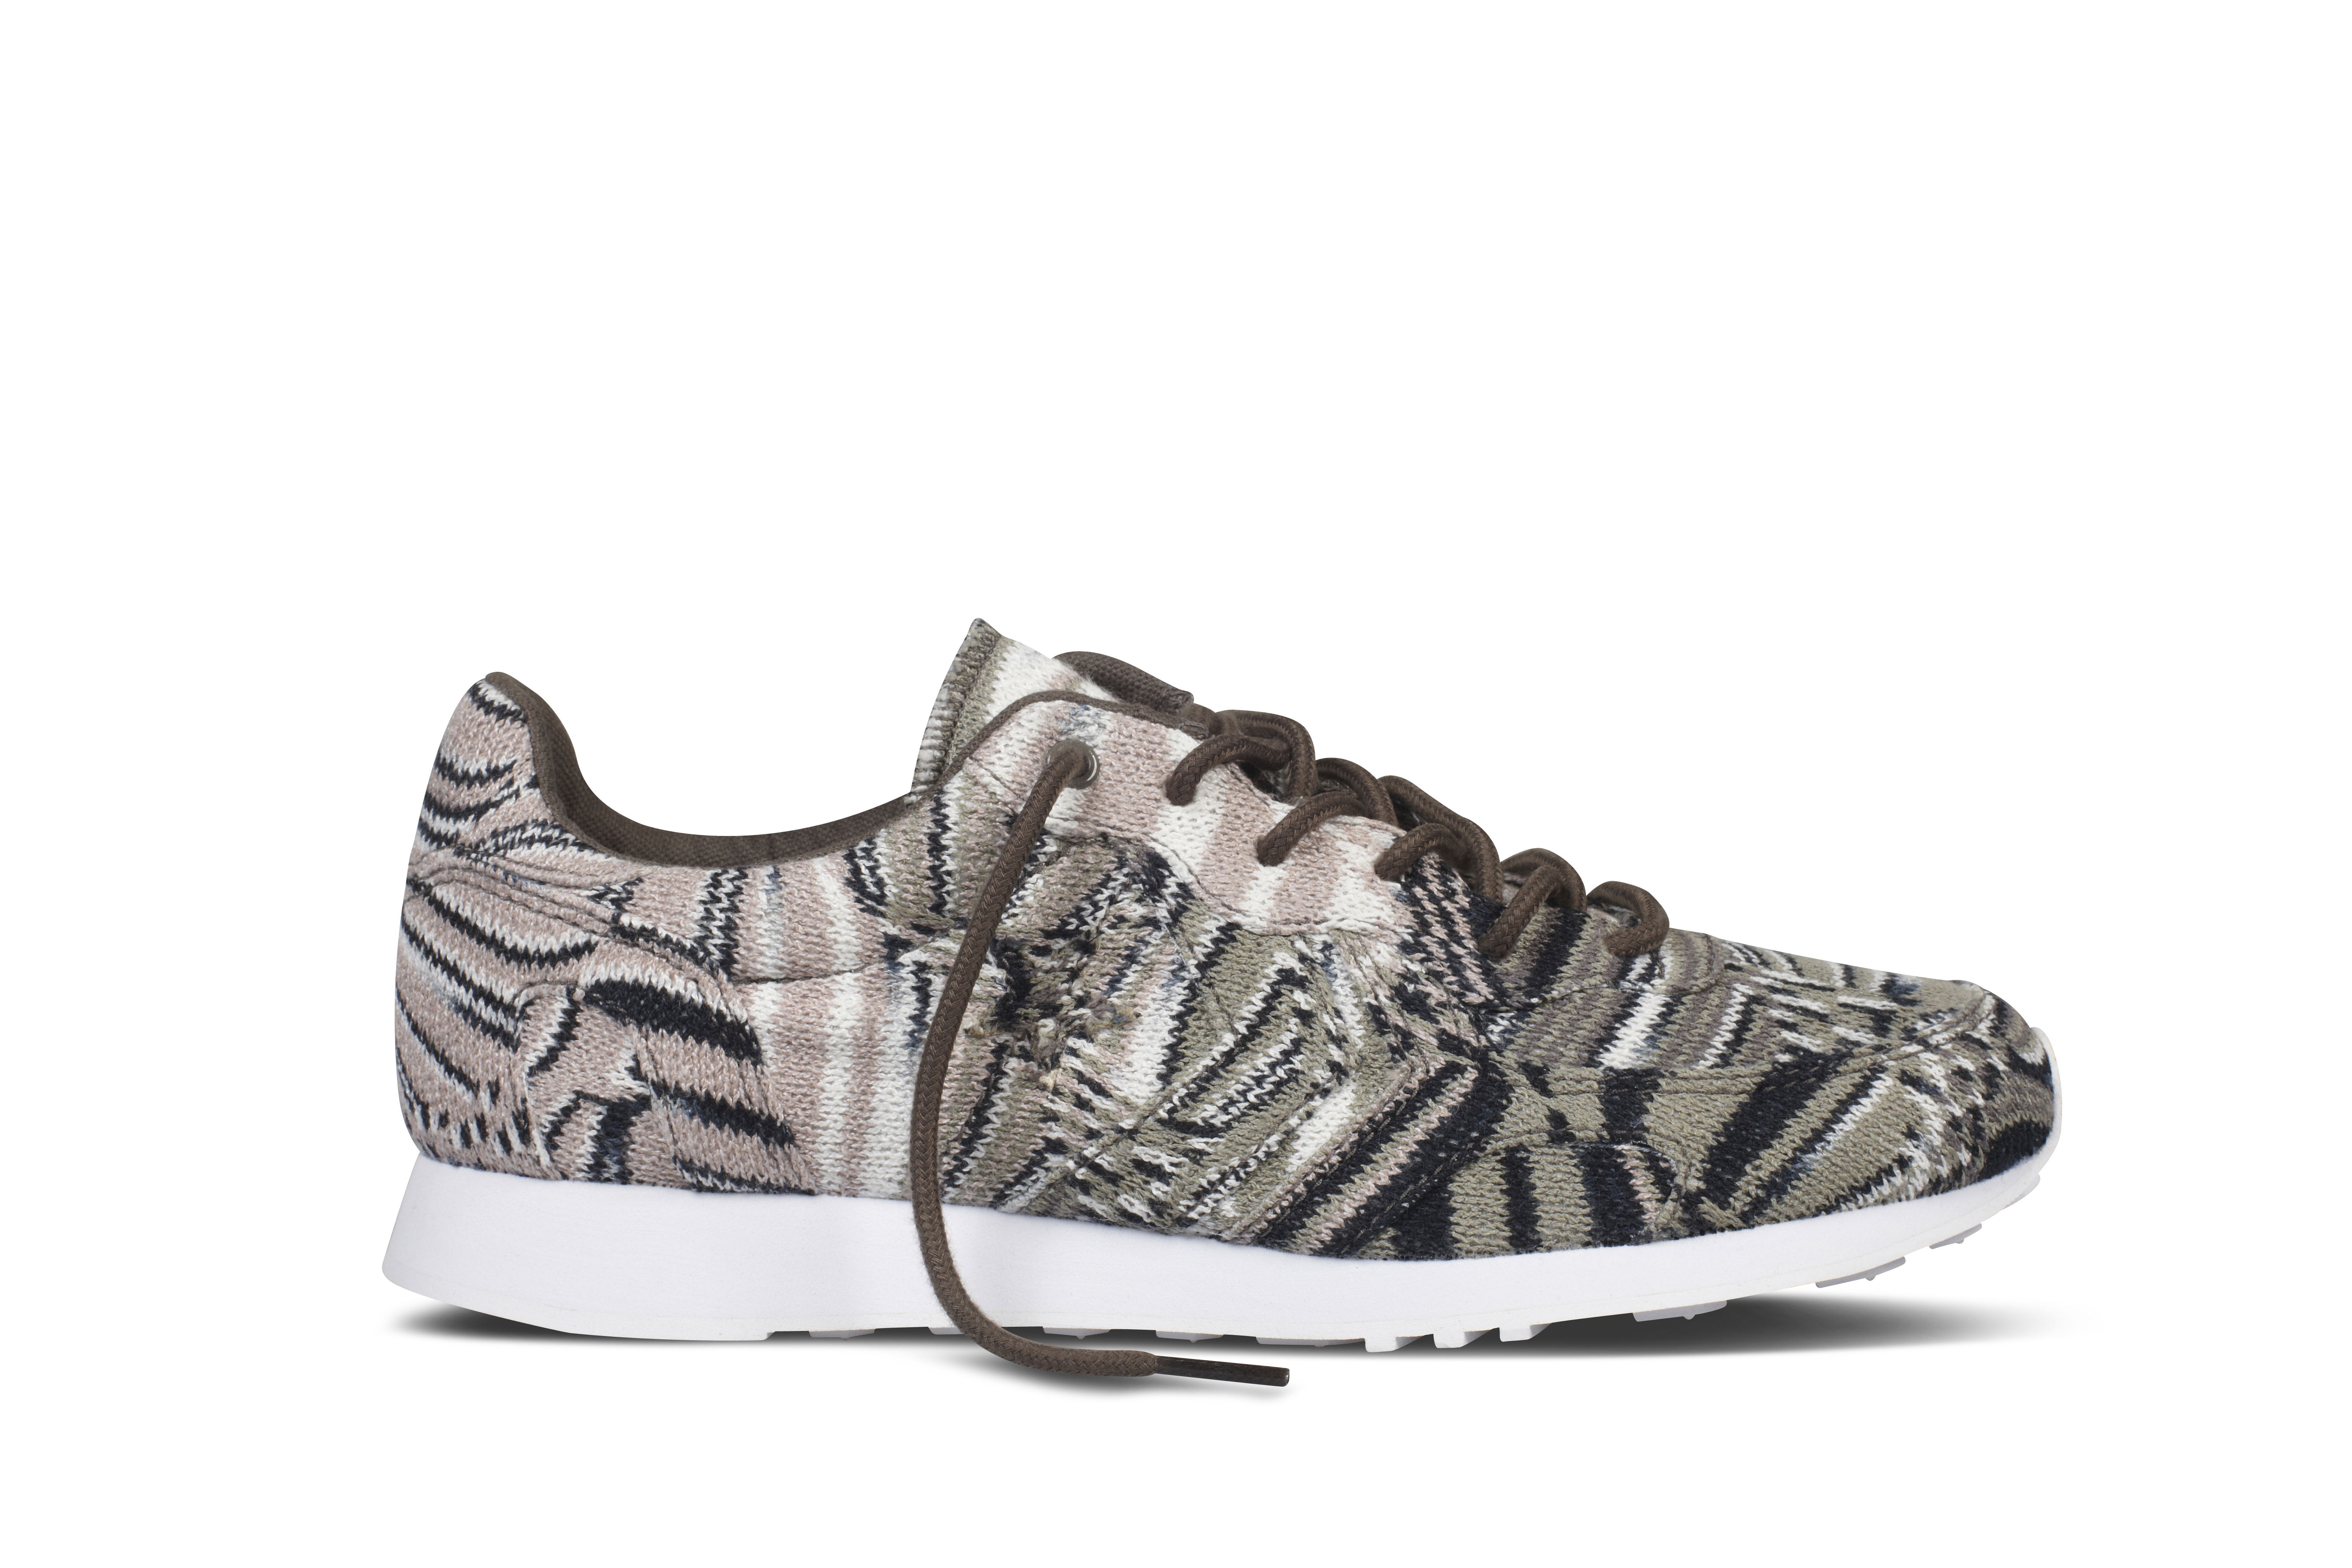 SP13_Missoni_for_Converse_Auckland_Racer7_18752